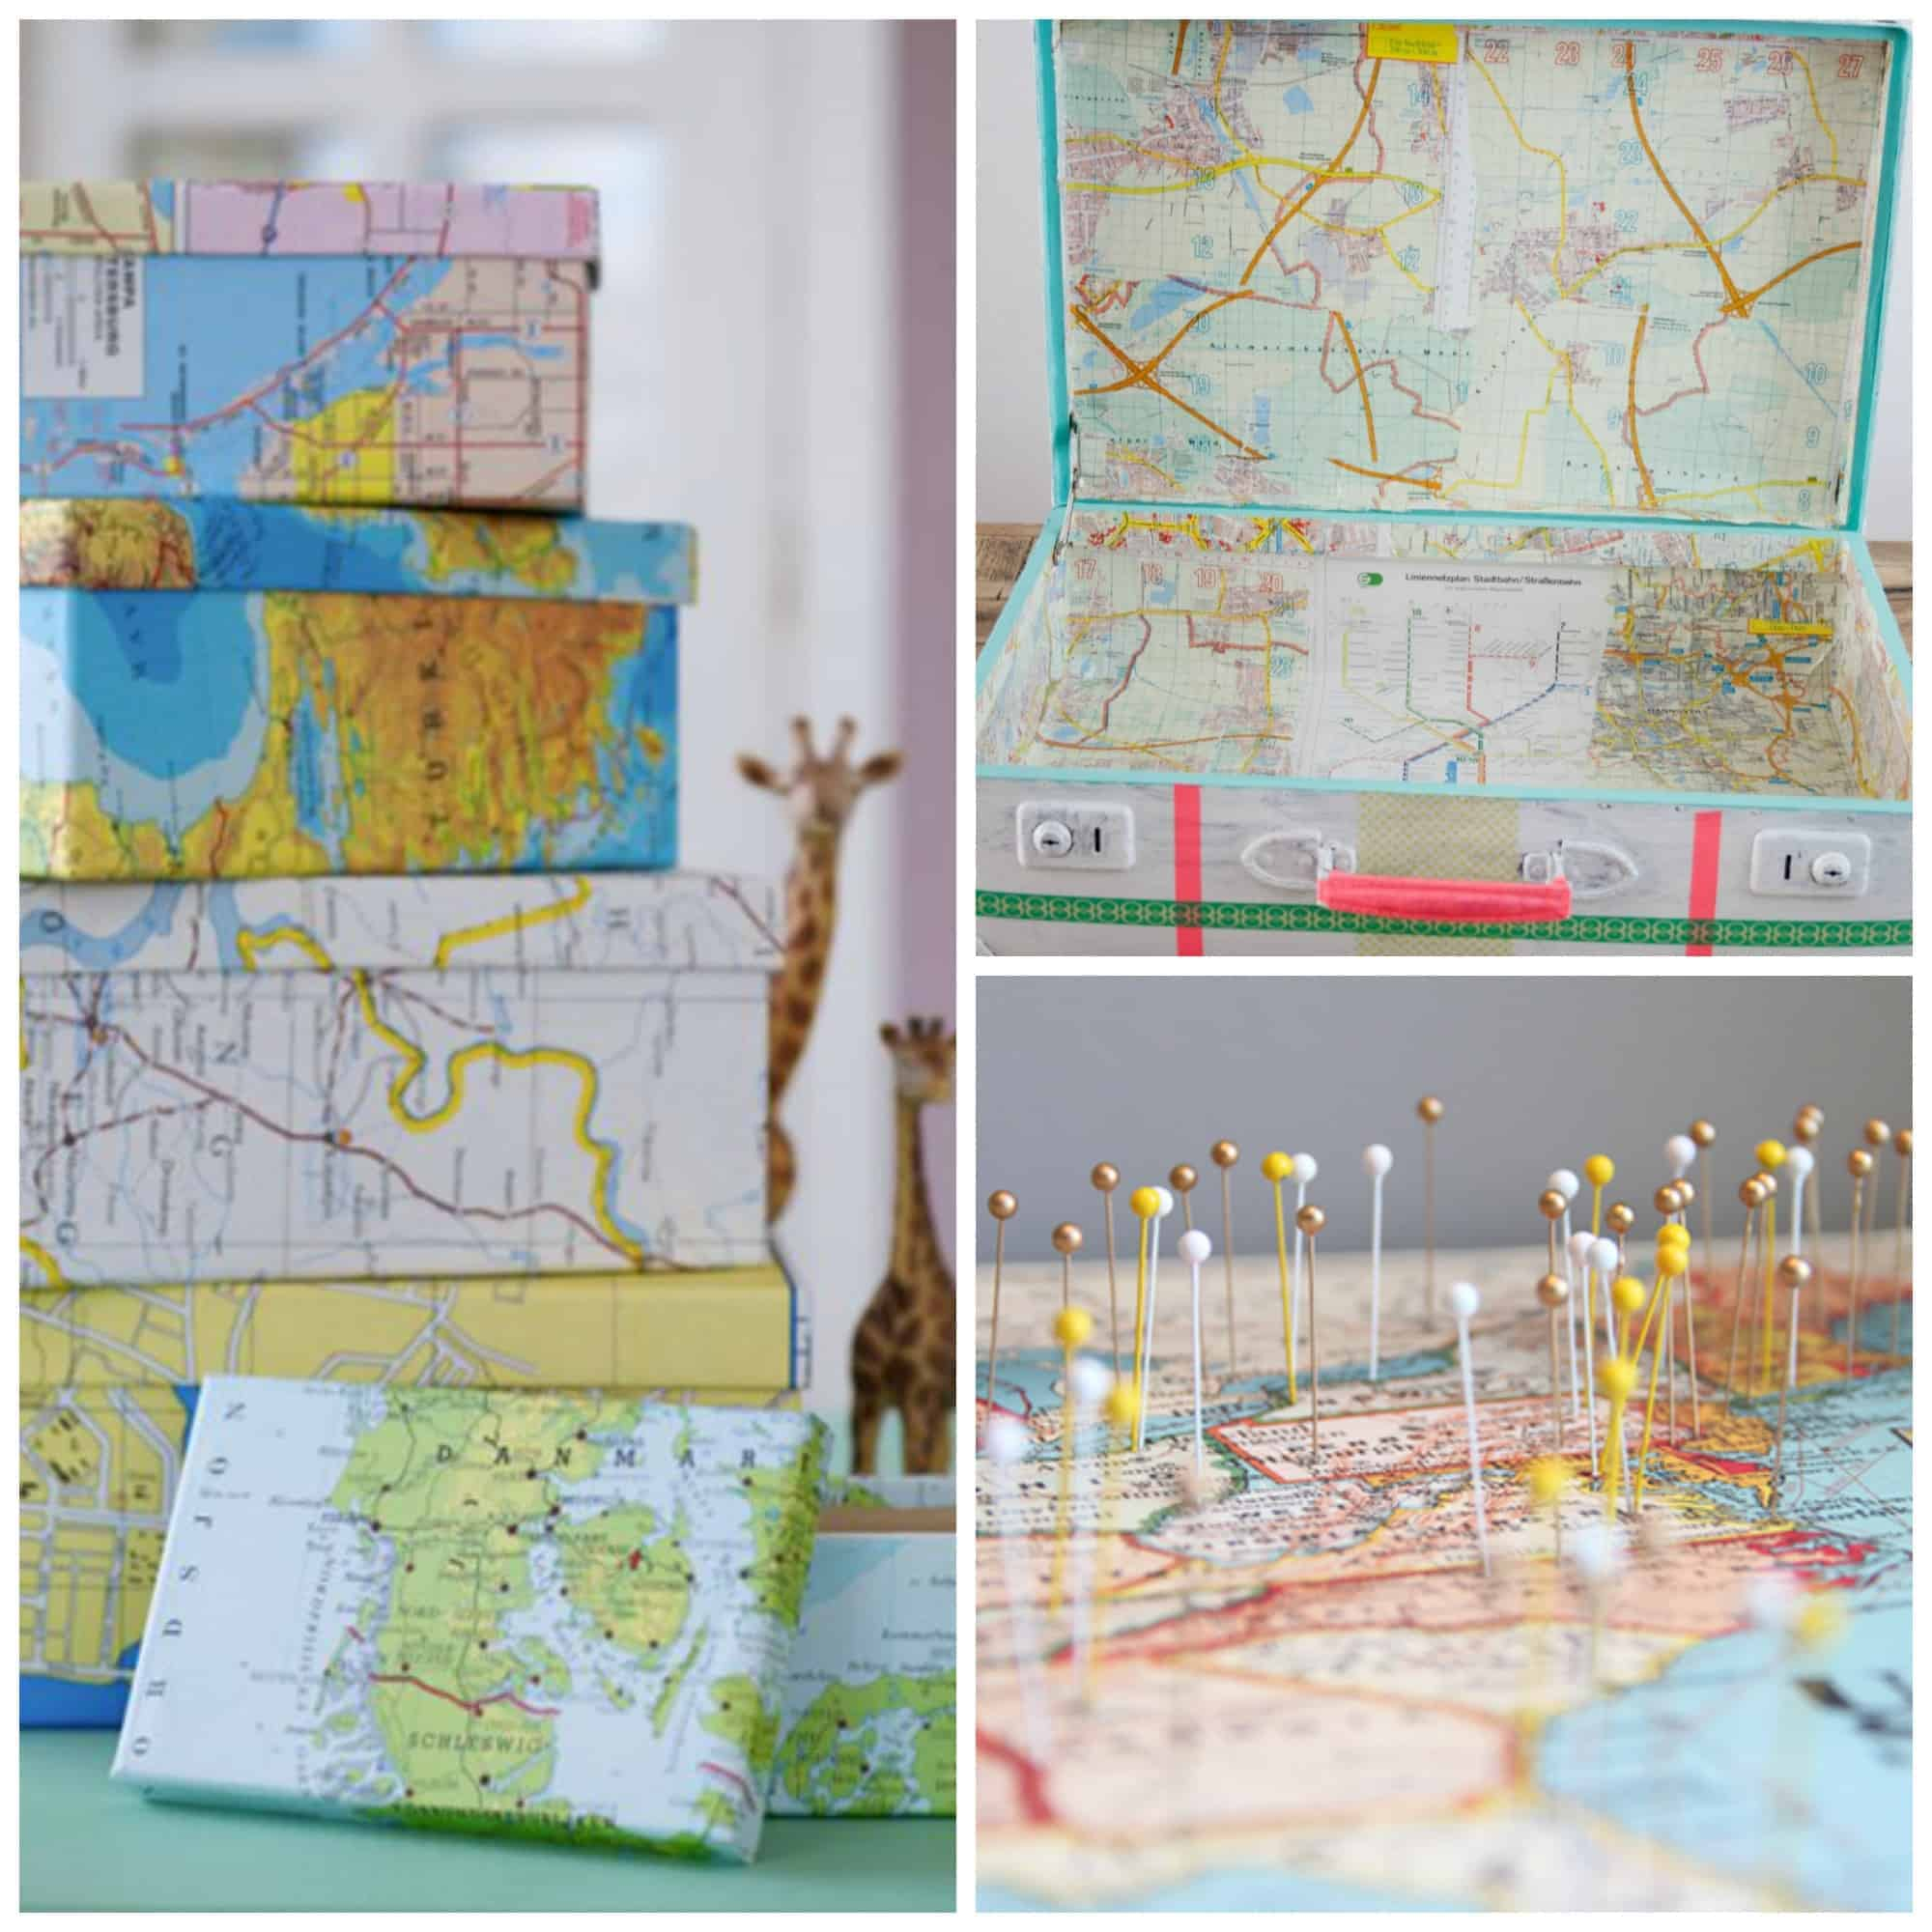 10 Brilliant ways to decorate with maps, everything from suitcases to frames